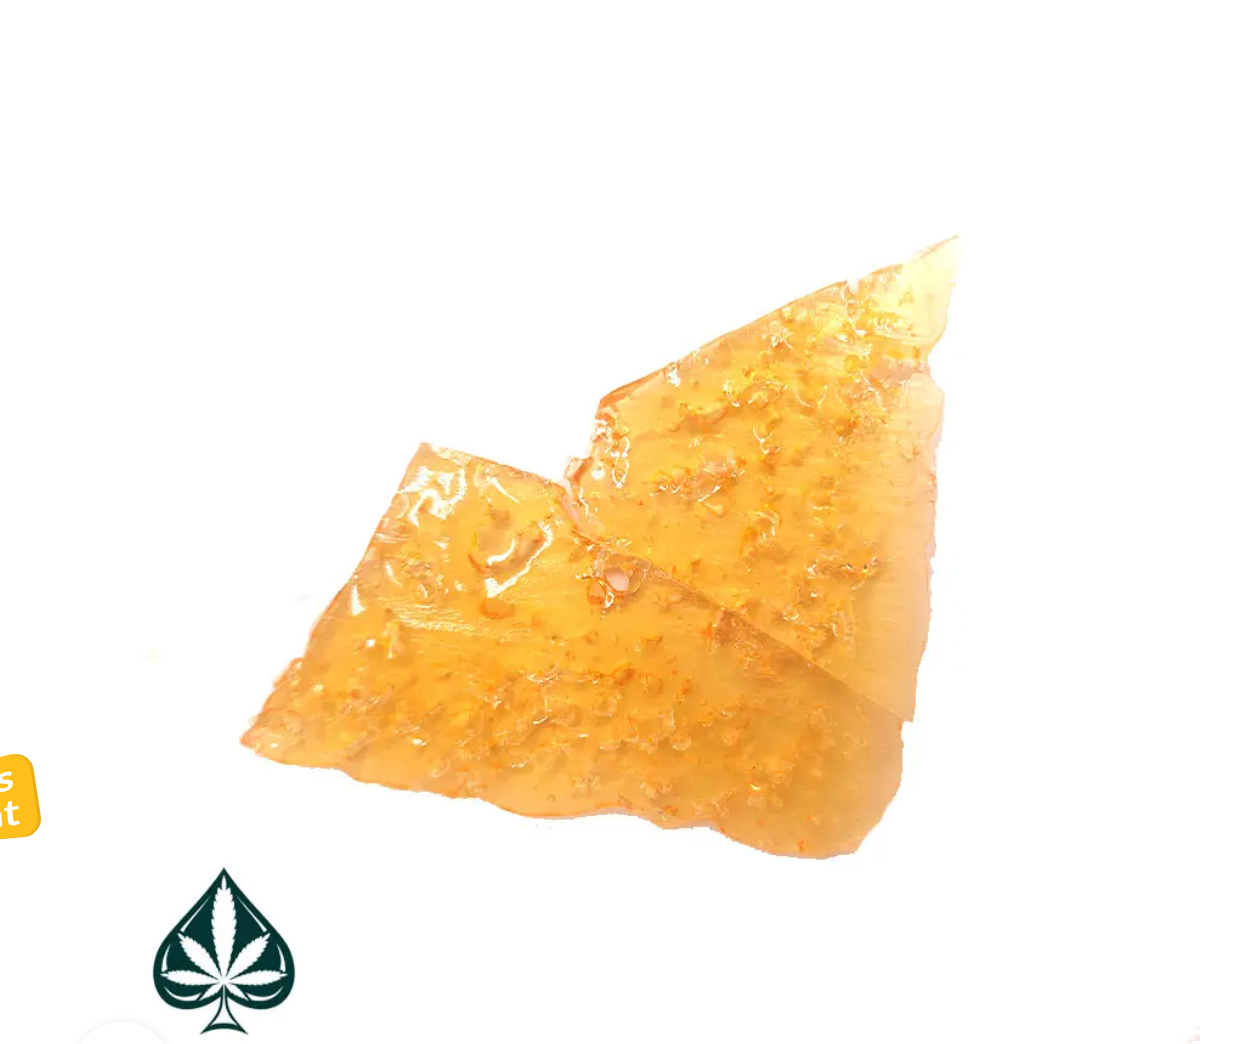 PINK DEATH SHATTER – INDICA DOMINANT HYBRID – AAAA BY THE GREEN SAMURAI